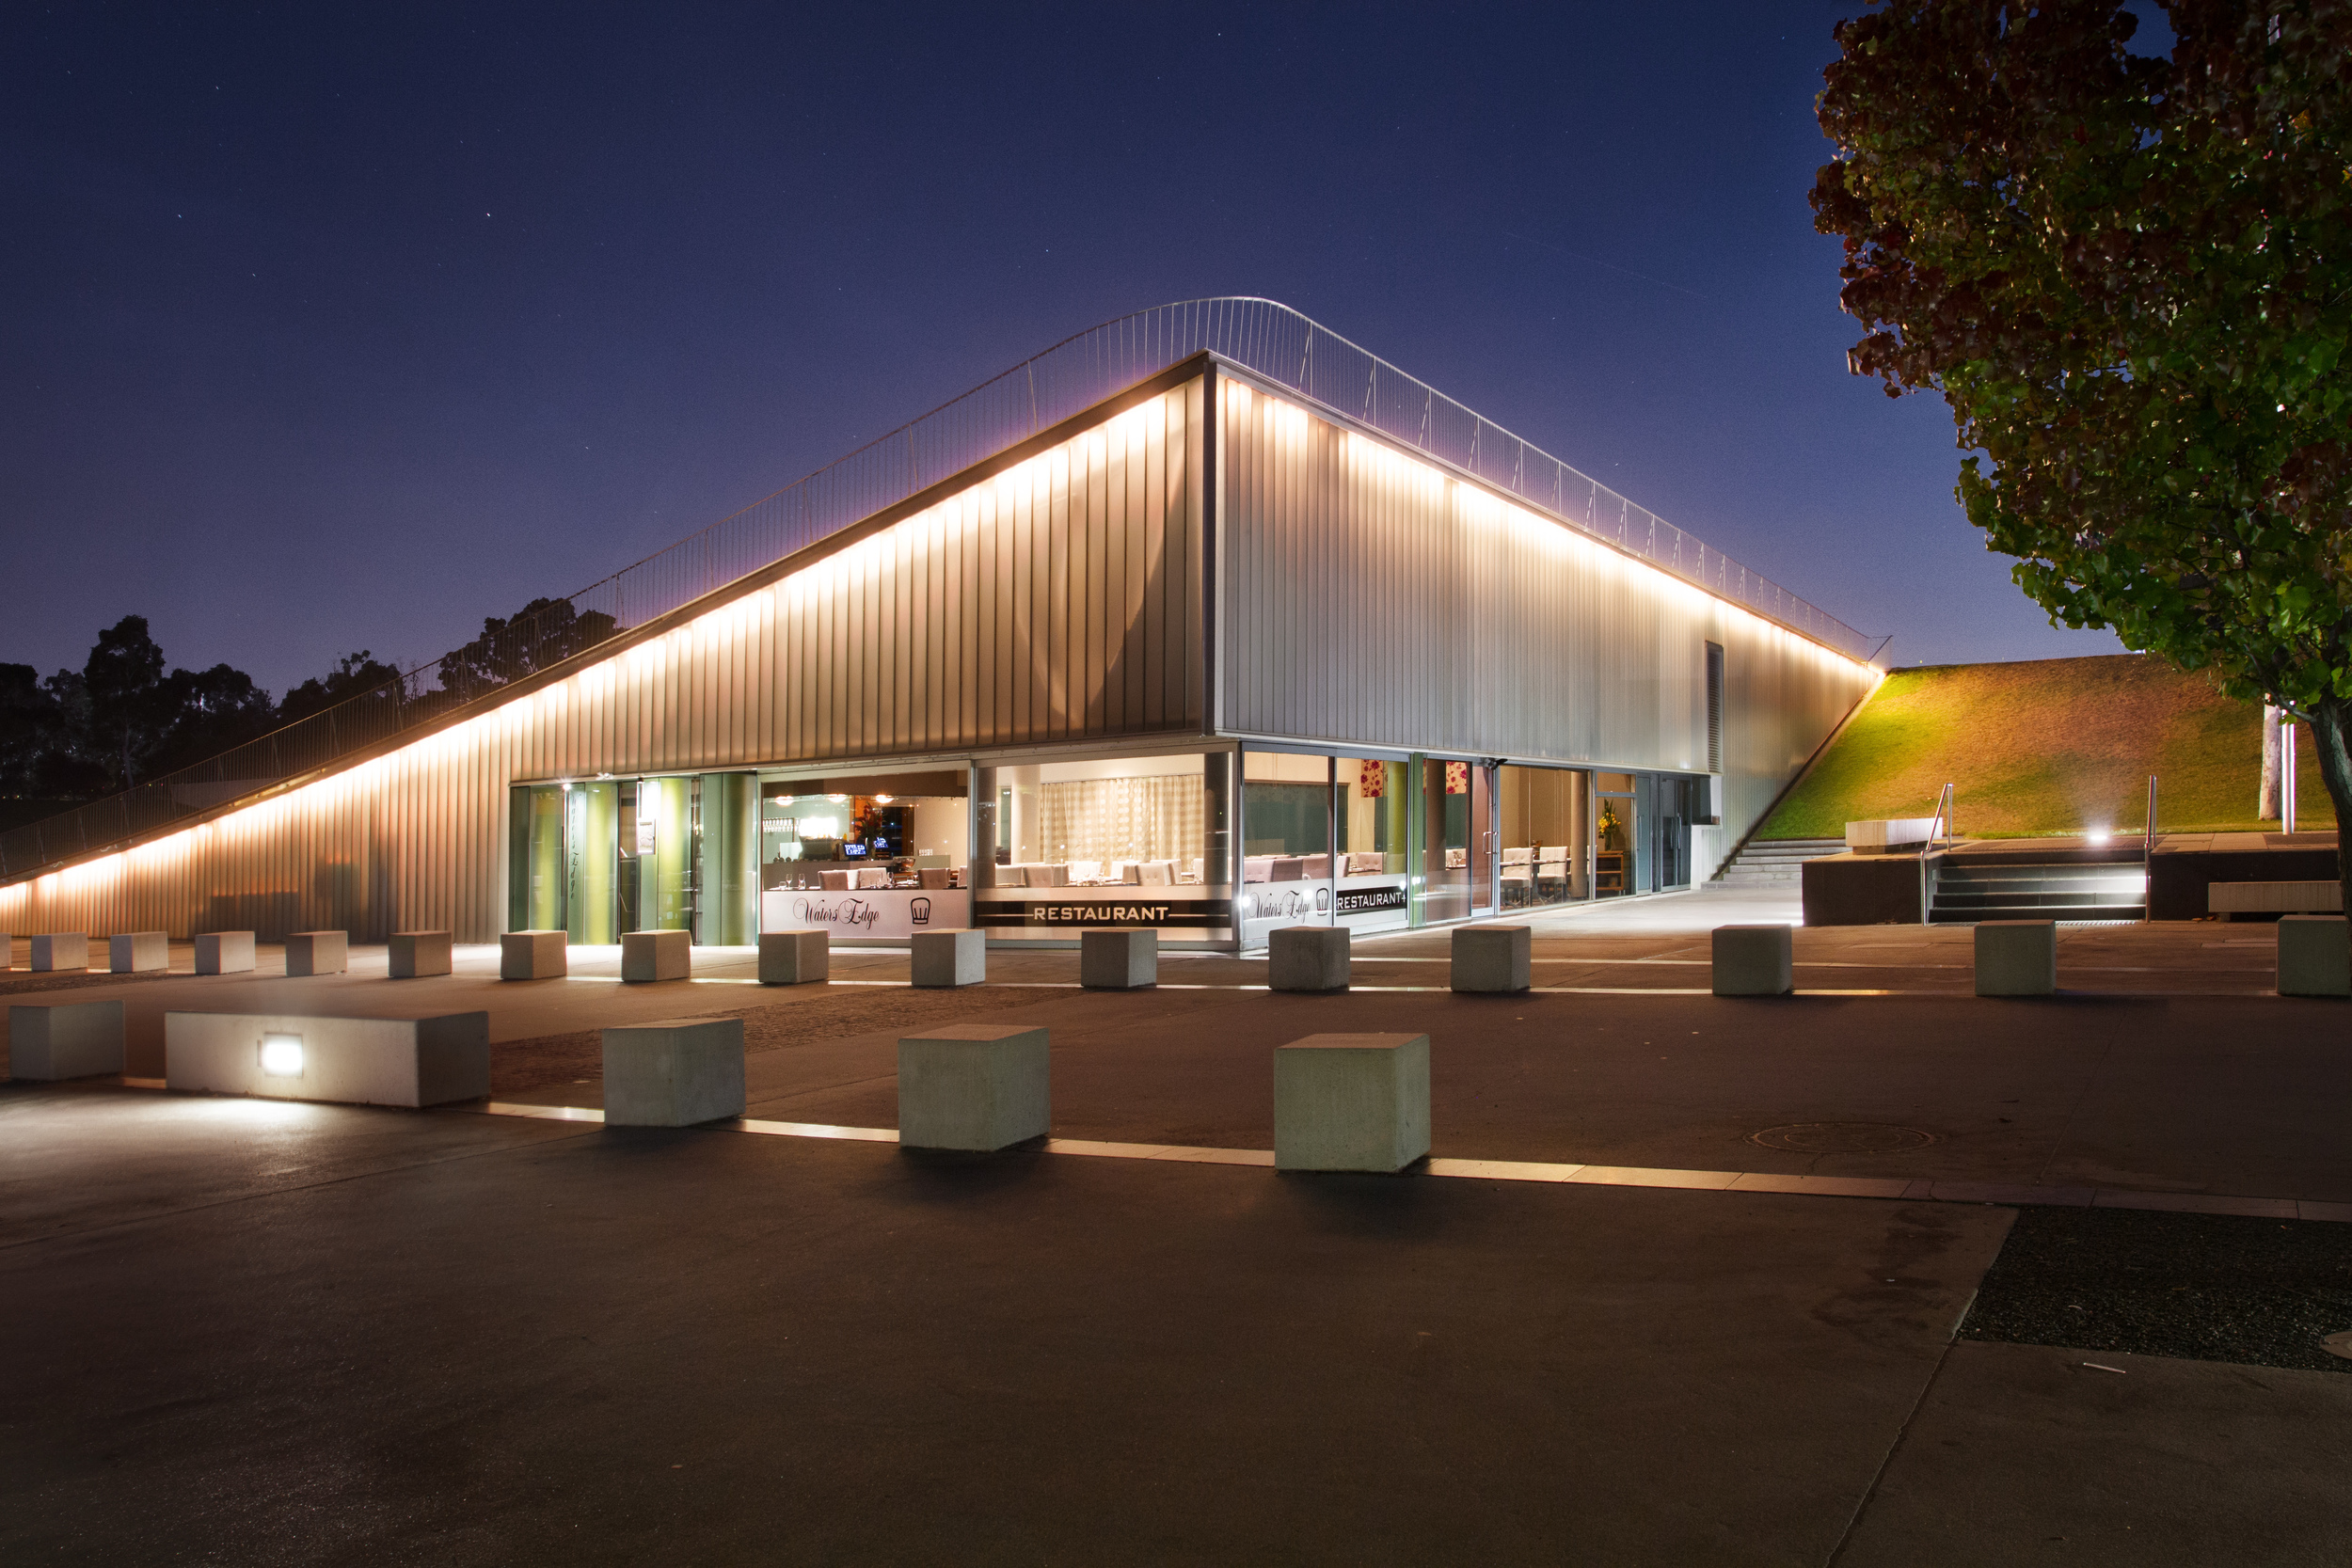 Waters Edge Restaurant, Canberra ACT